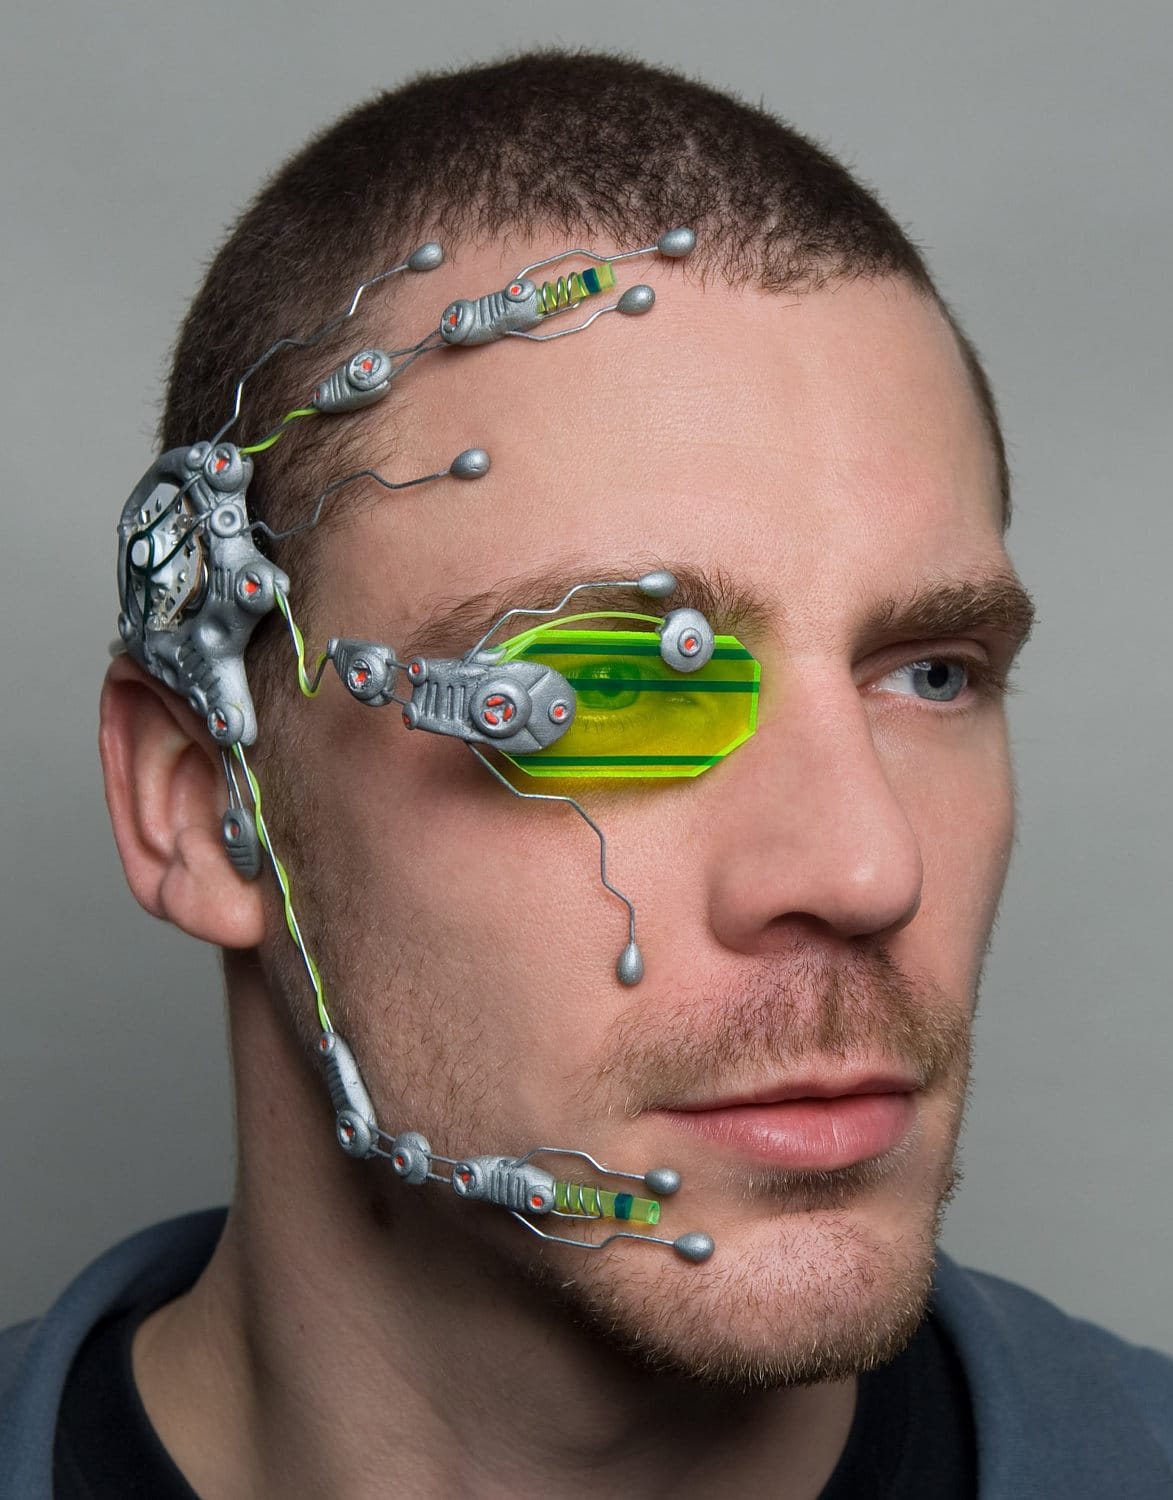 Cybernetic Head Systems Available (Time Travel Not Included)